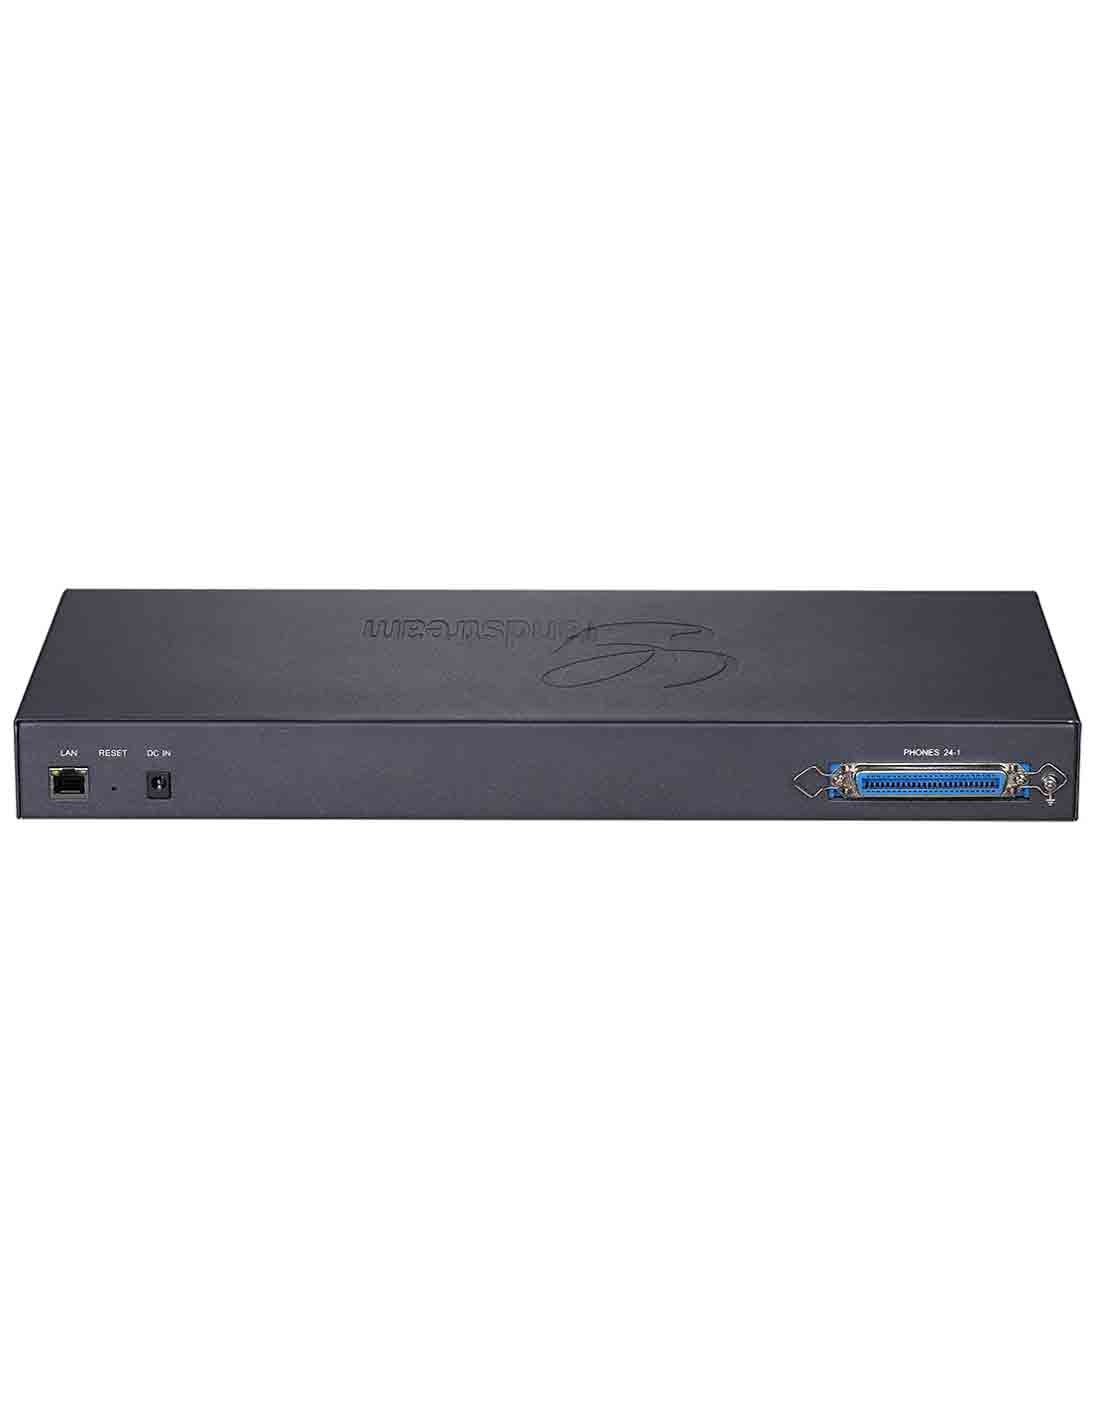 Grandstream GXW4224 FXS Analog IP Gateway Buy Online at a cheap price in Dubai UAE